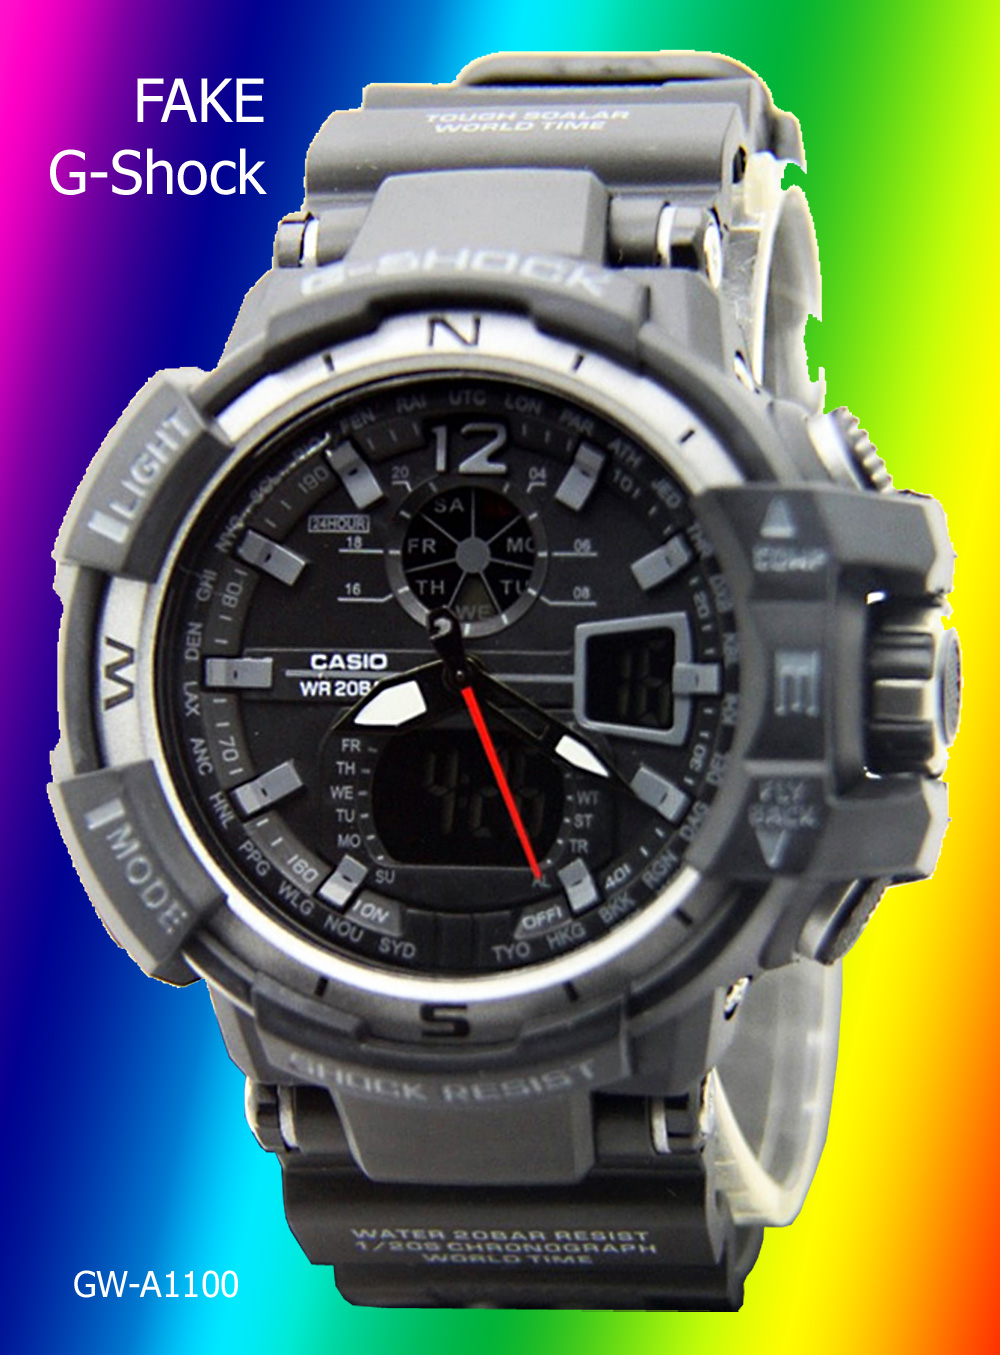 fake g shock watches wrist watch spot ForWatches G Shock